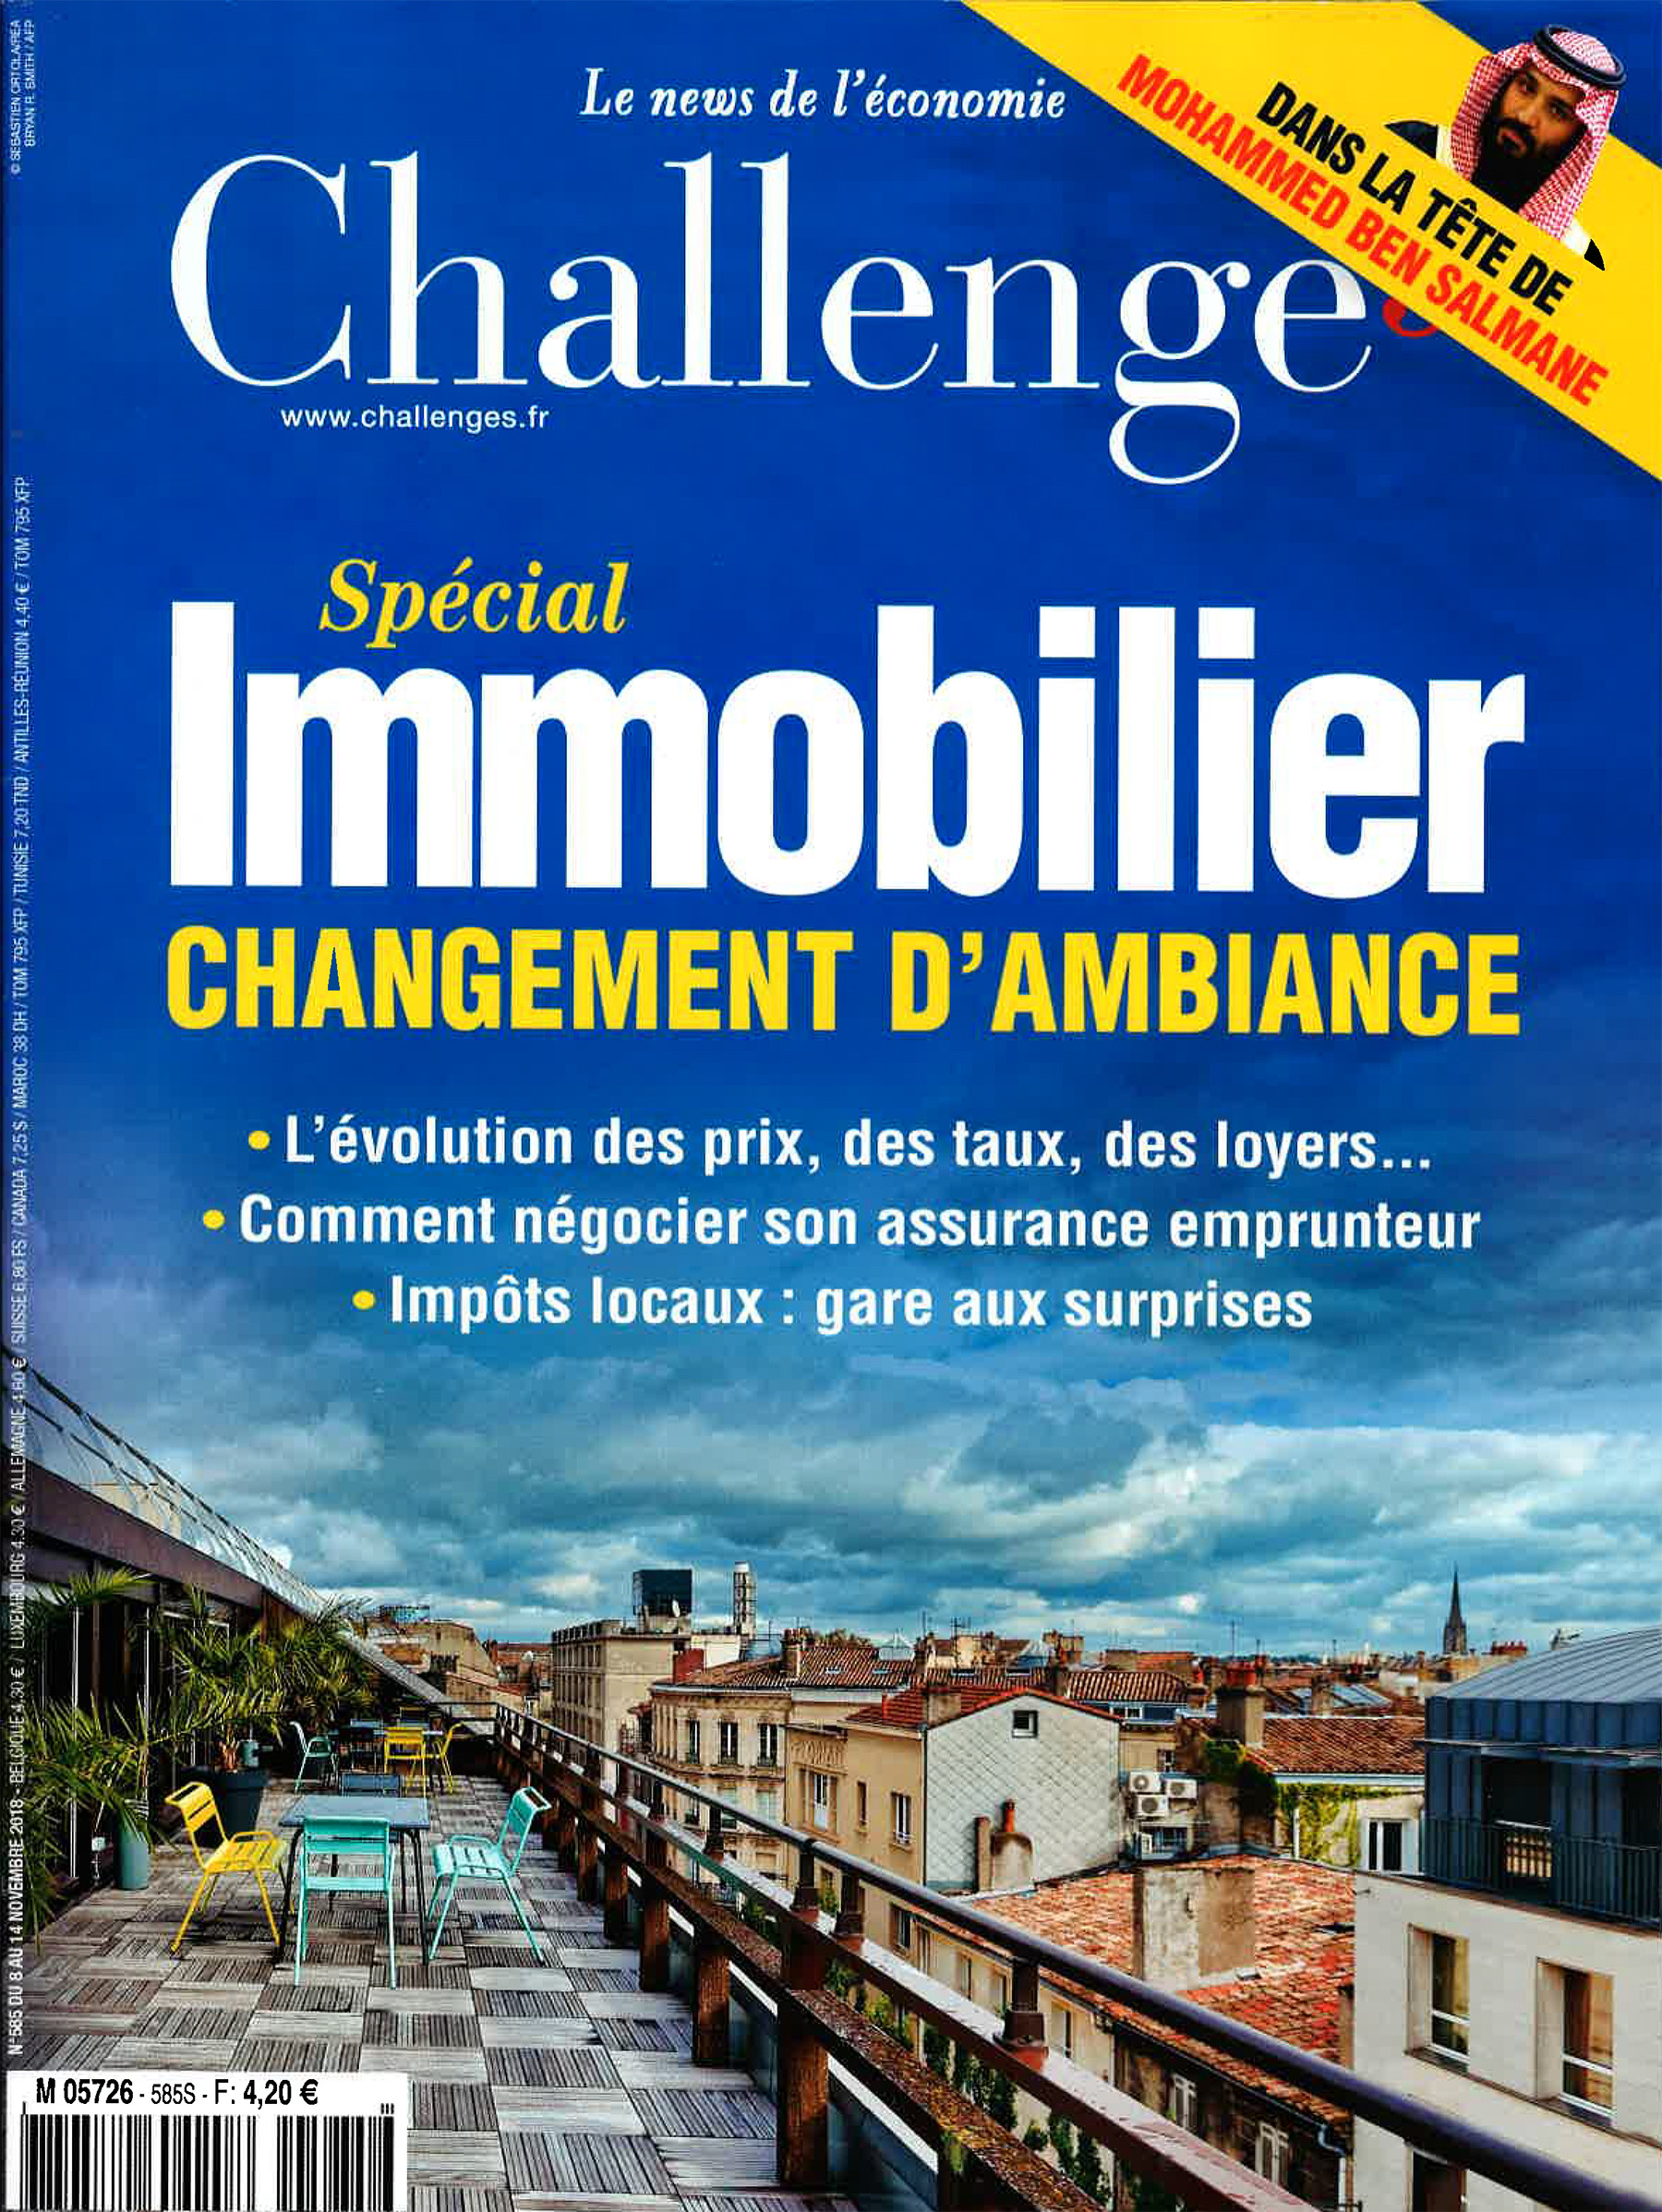 CHALLENGES MAGAZINE - REAL ESTATE SPECIAL - NOVEMBER 2018